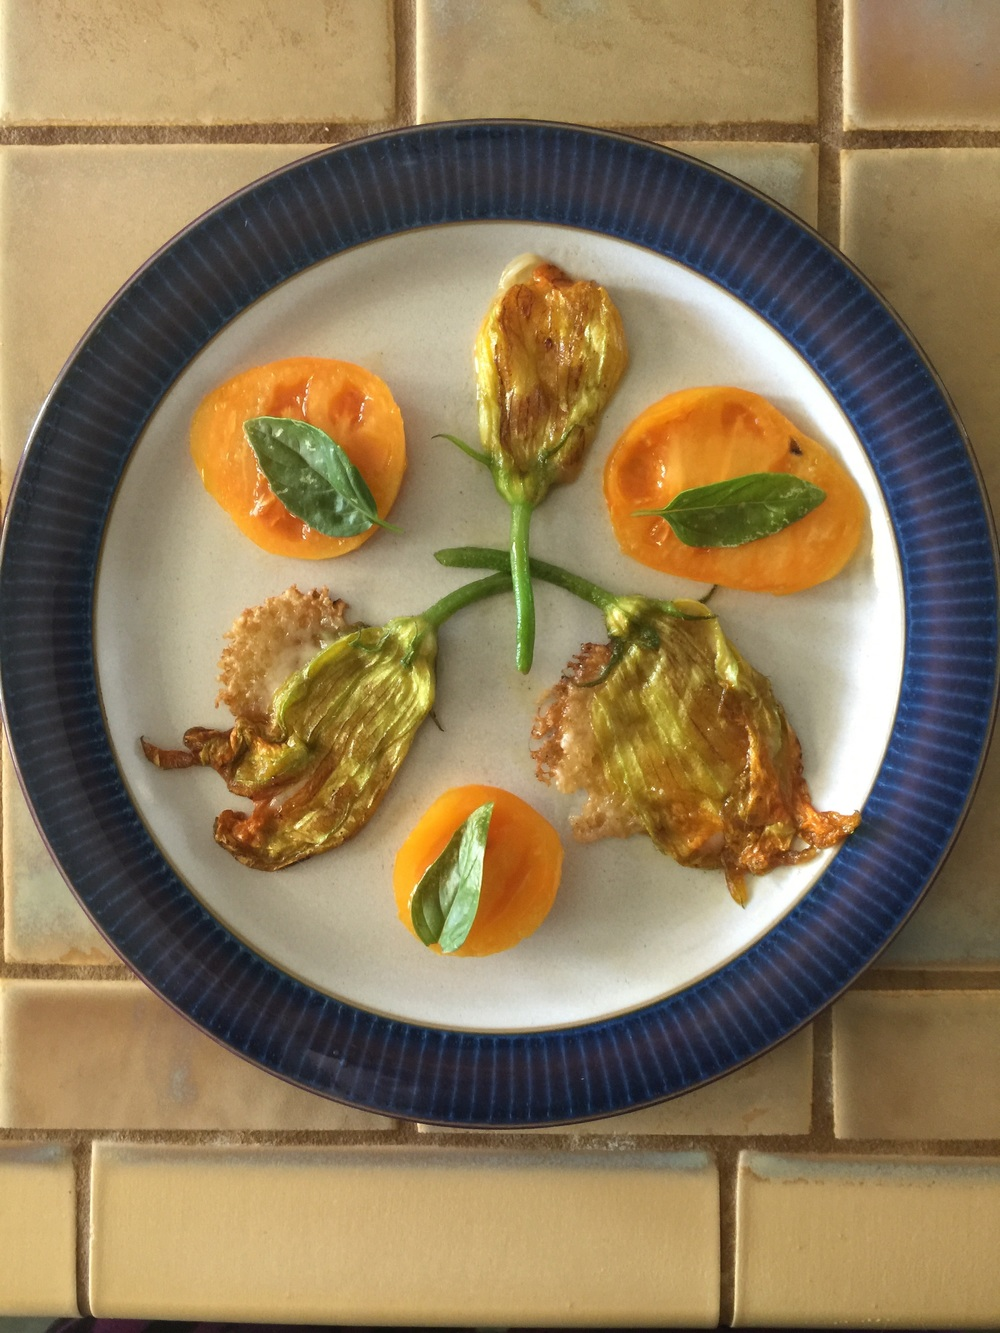 Squash blossoms stuffed with Gruyere cheese and sautéed in olive oil